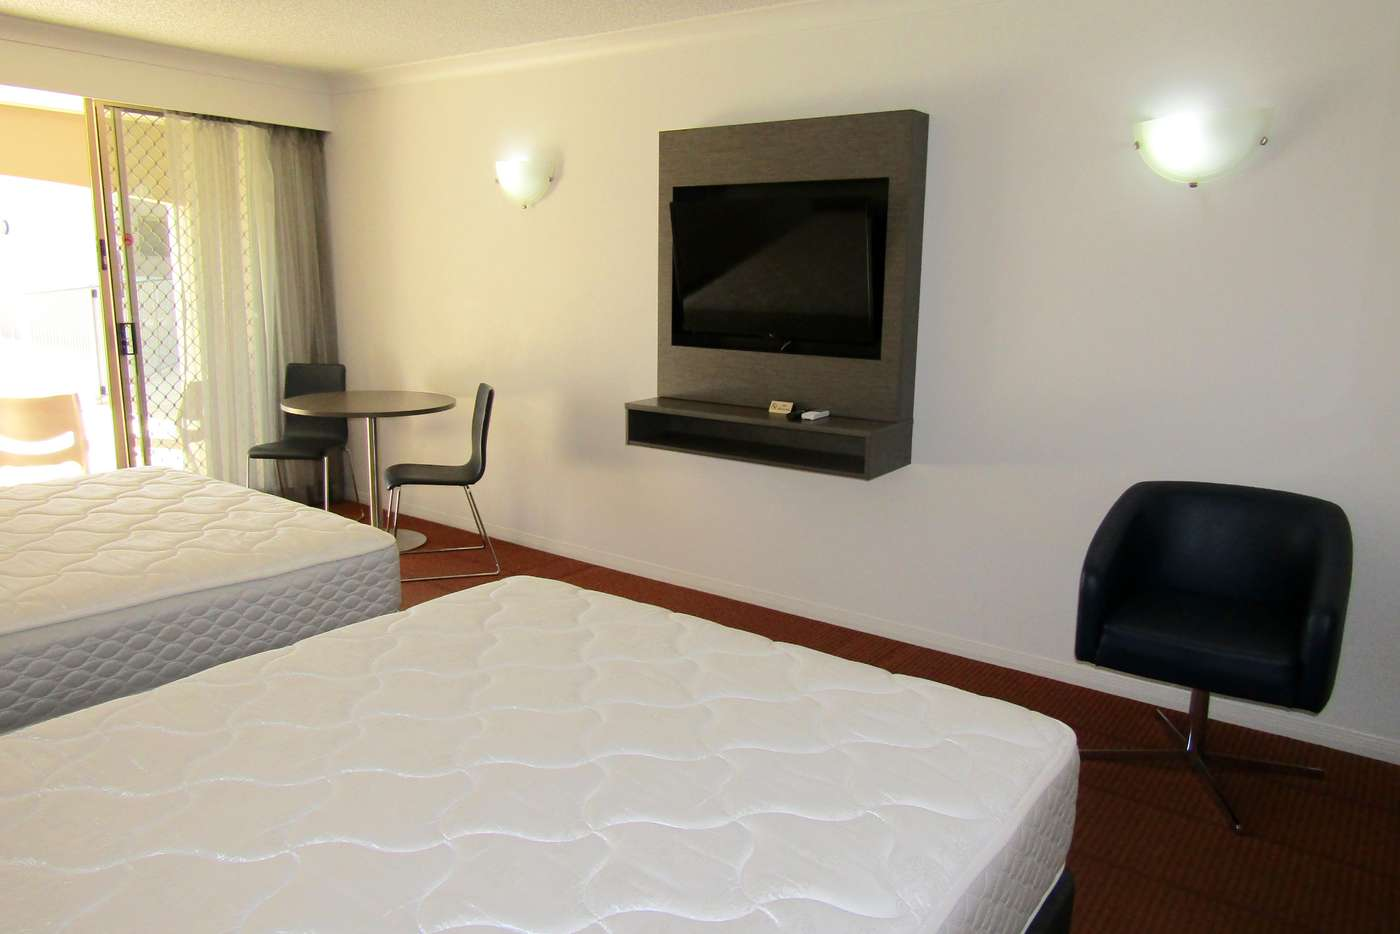 Seventh view of Homely apartment listing, Unit 1020, Ramada Hotel/56 John Lund Drive, Hope Island QLD 4212